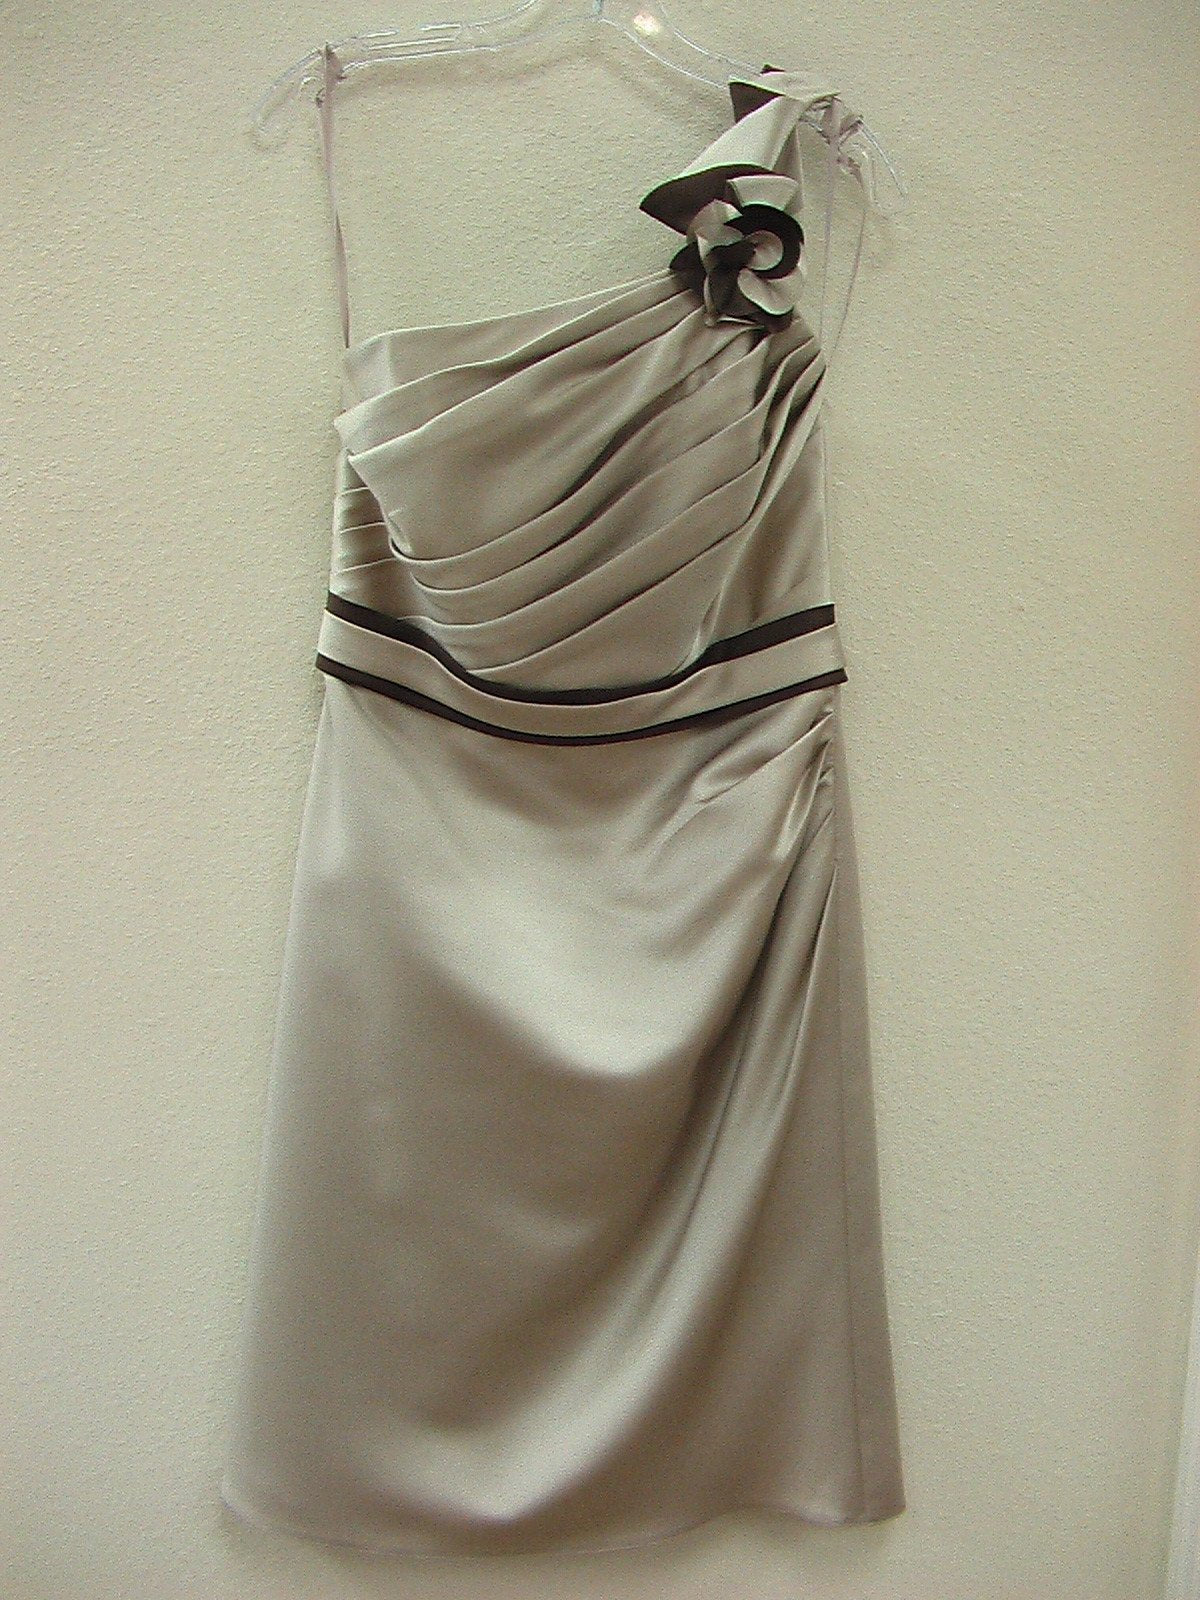 Allure 1277 Cappuccino/Chocolate Size 10 In Stock Bridesmaid Dress - Tom's Bridal